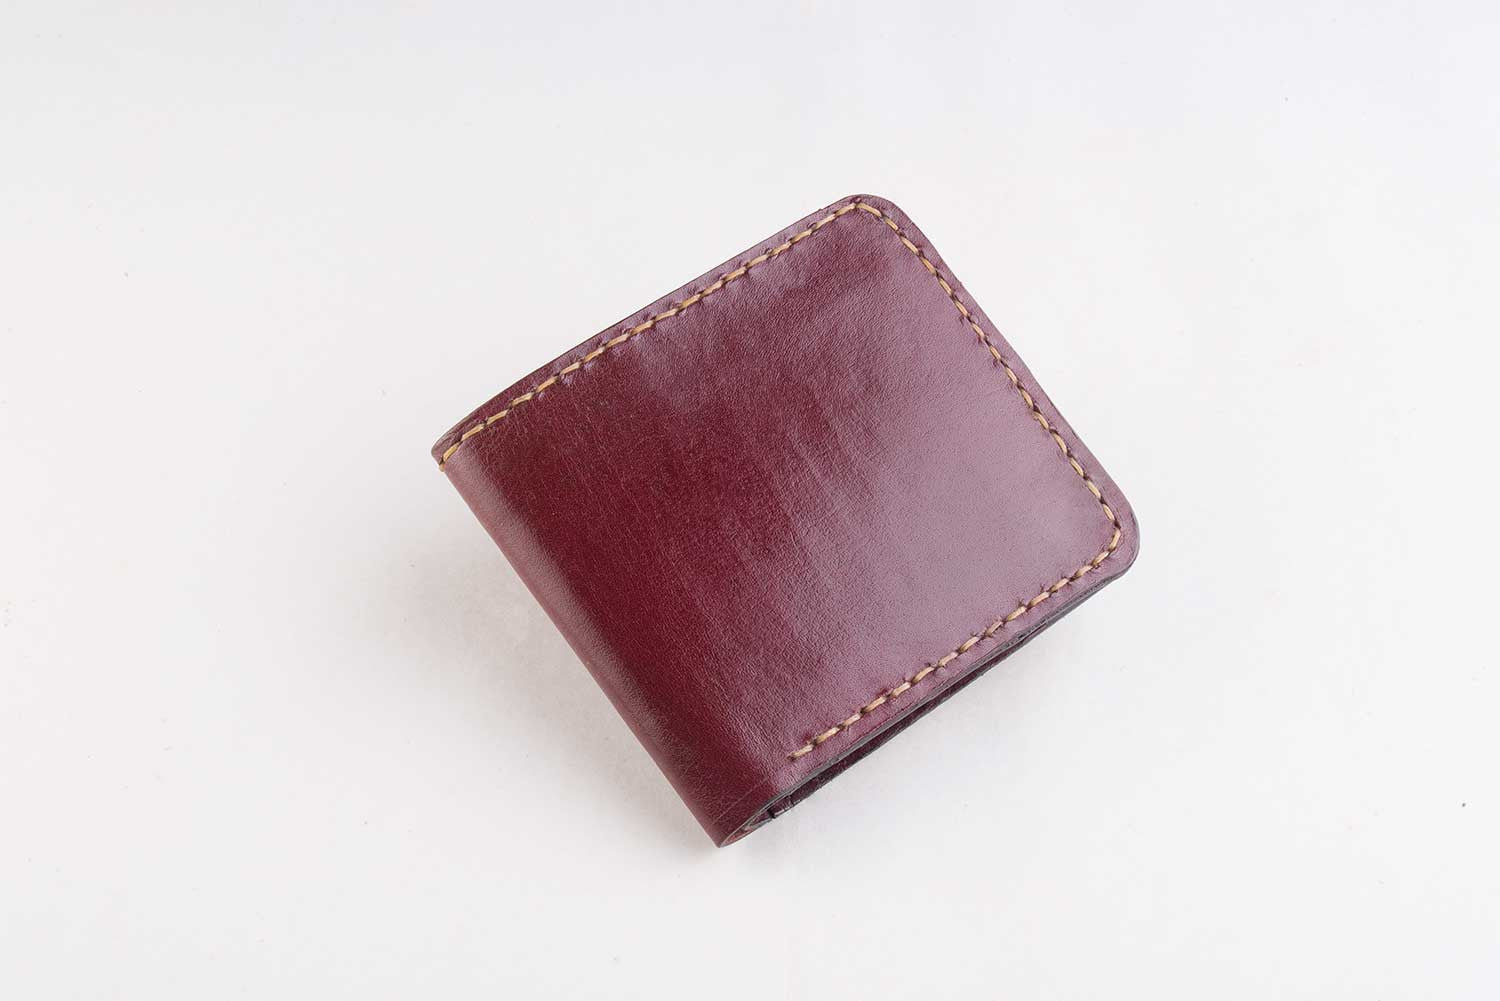 Gutsy Men's wallet - Burgundy - Two Horns